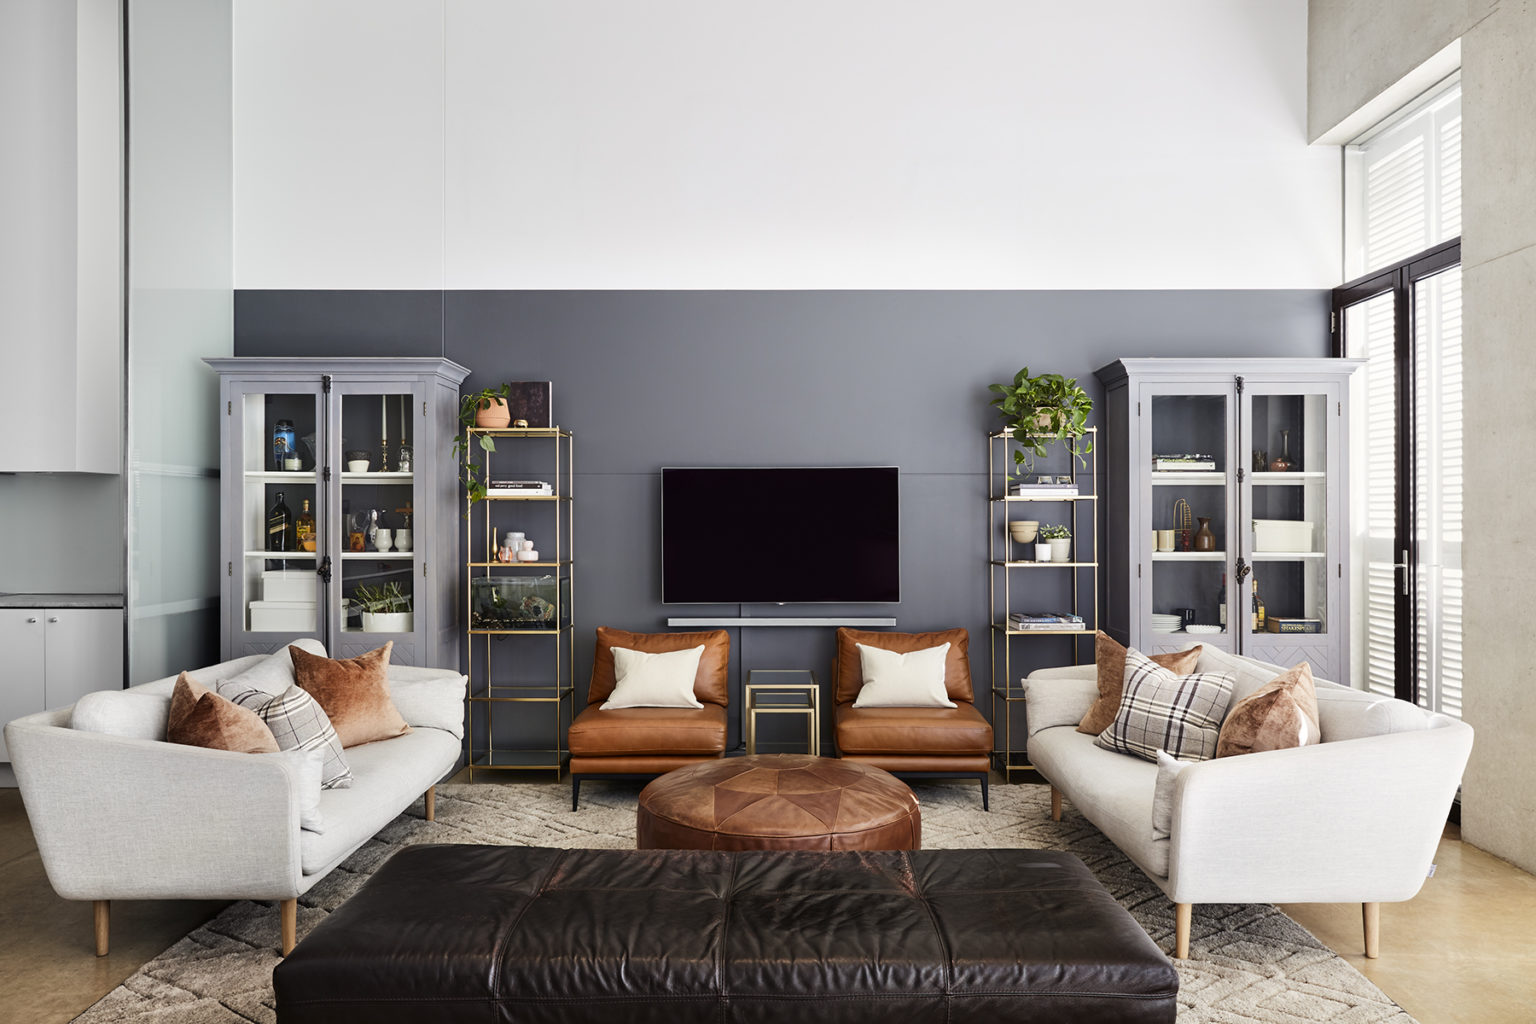 living room with cream couches and brown leather chairs and grey bookcases against charcoal wall